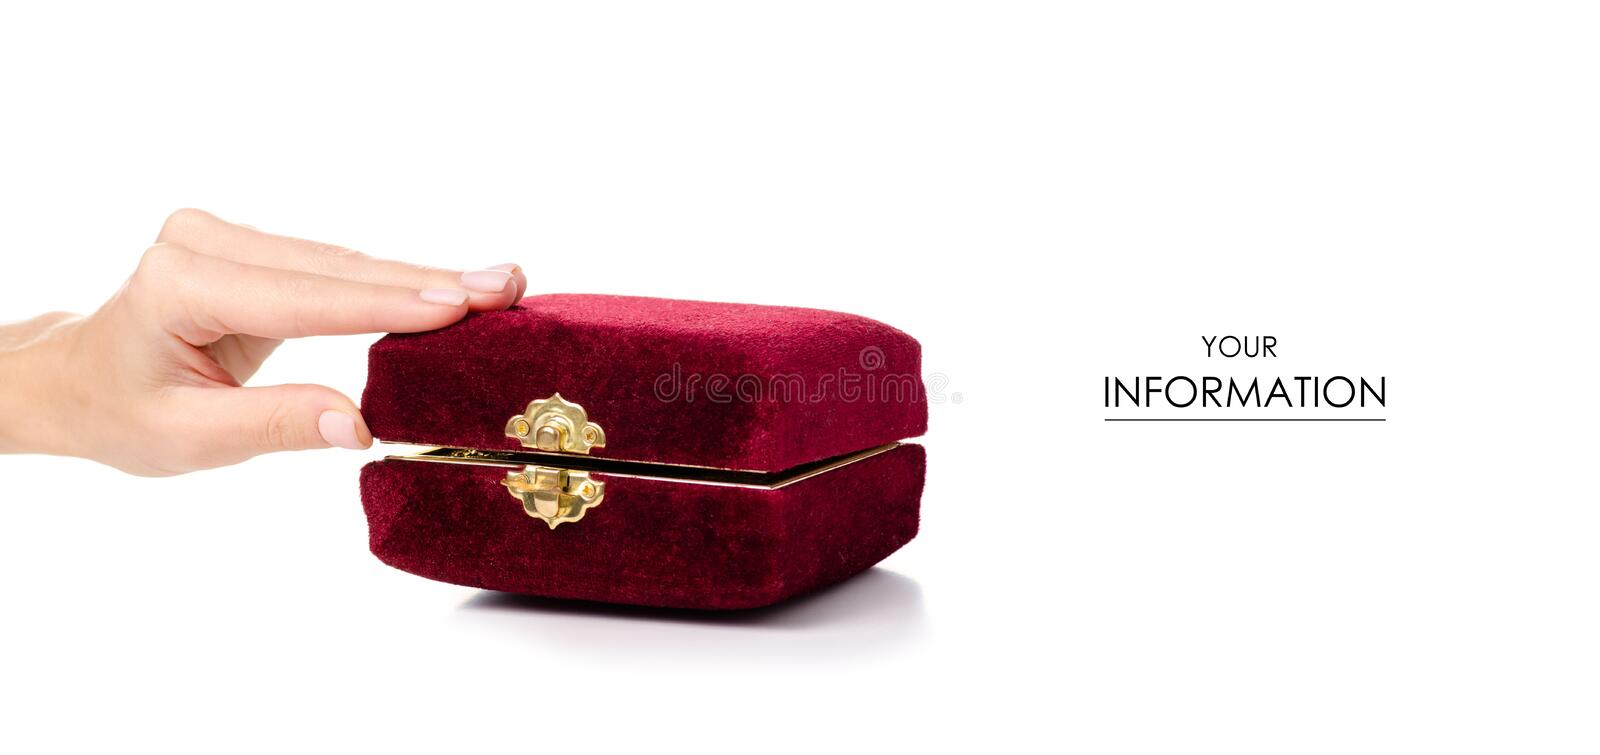 Red casket in hand pattern royalty free stock images